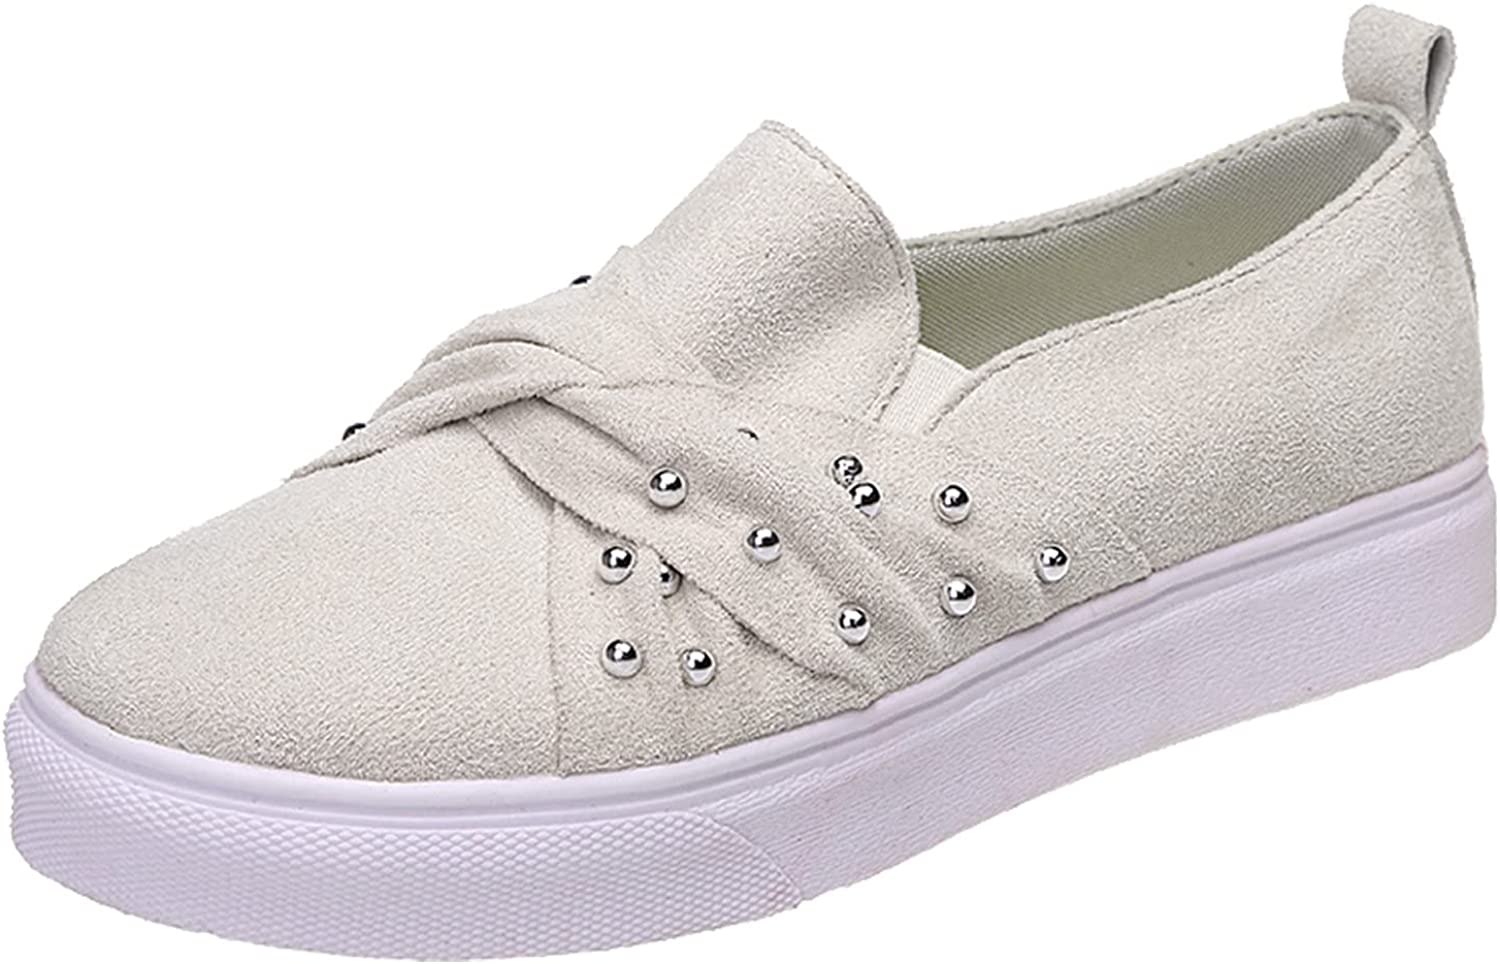 DRAGONHOO Fashion Women's Casual Shoes Breathable Slip-on Flats Outdoor Leisure Sneakers Tennis Shoes for Women White Tennis Shoes Womens White Sneakers